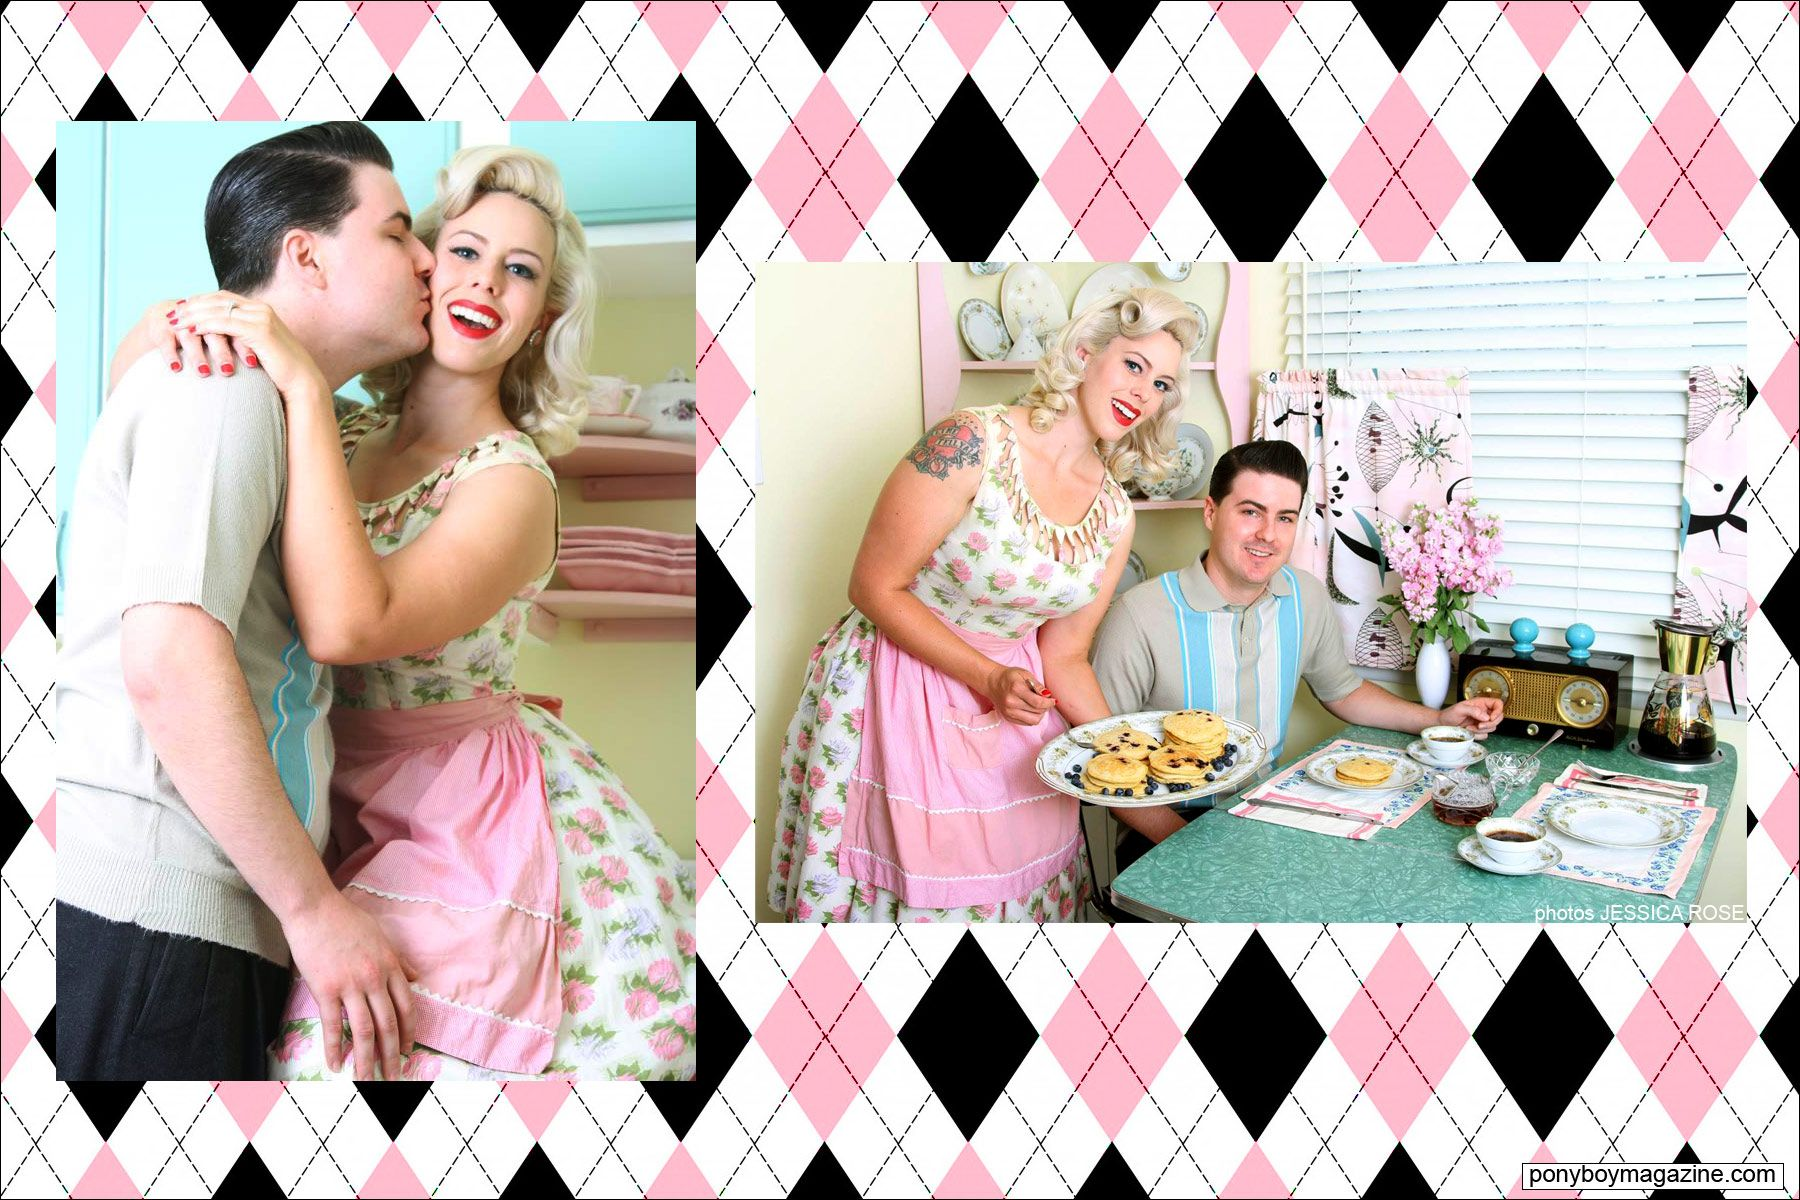 Photos of Dollie Simpson, The Rockabilly Socialite, at home with husband Zack Simpson. Ponyboy Magazine.